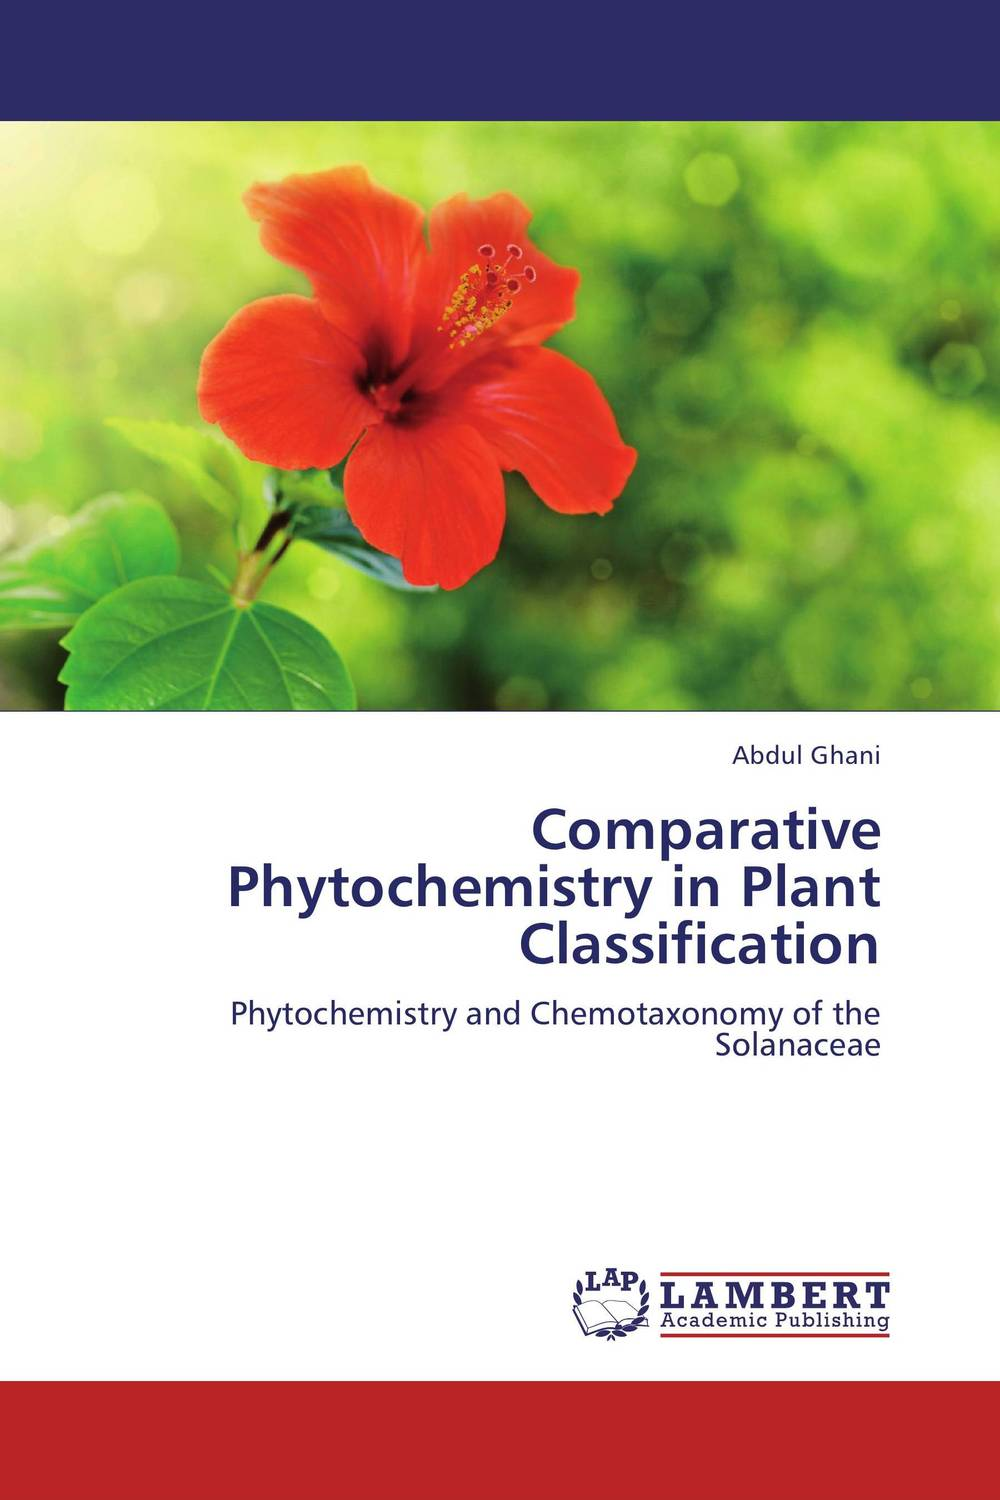 Comparative Phytochemistry in Plant Classification laxman sawant bala prabhakar and nancy pandita phytochemistry and bioactivity of enicostemma littorale